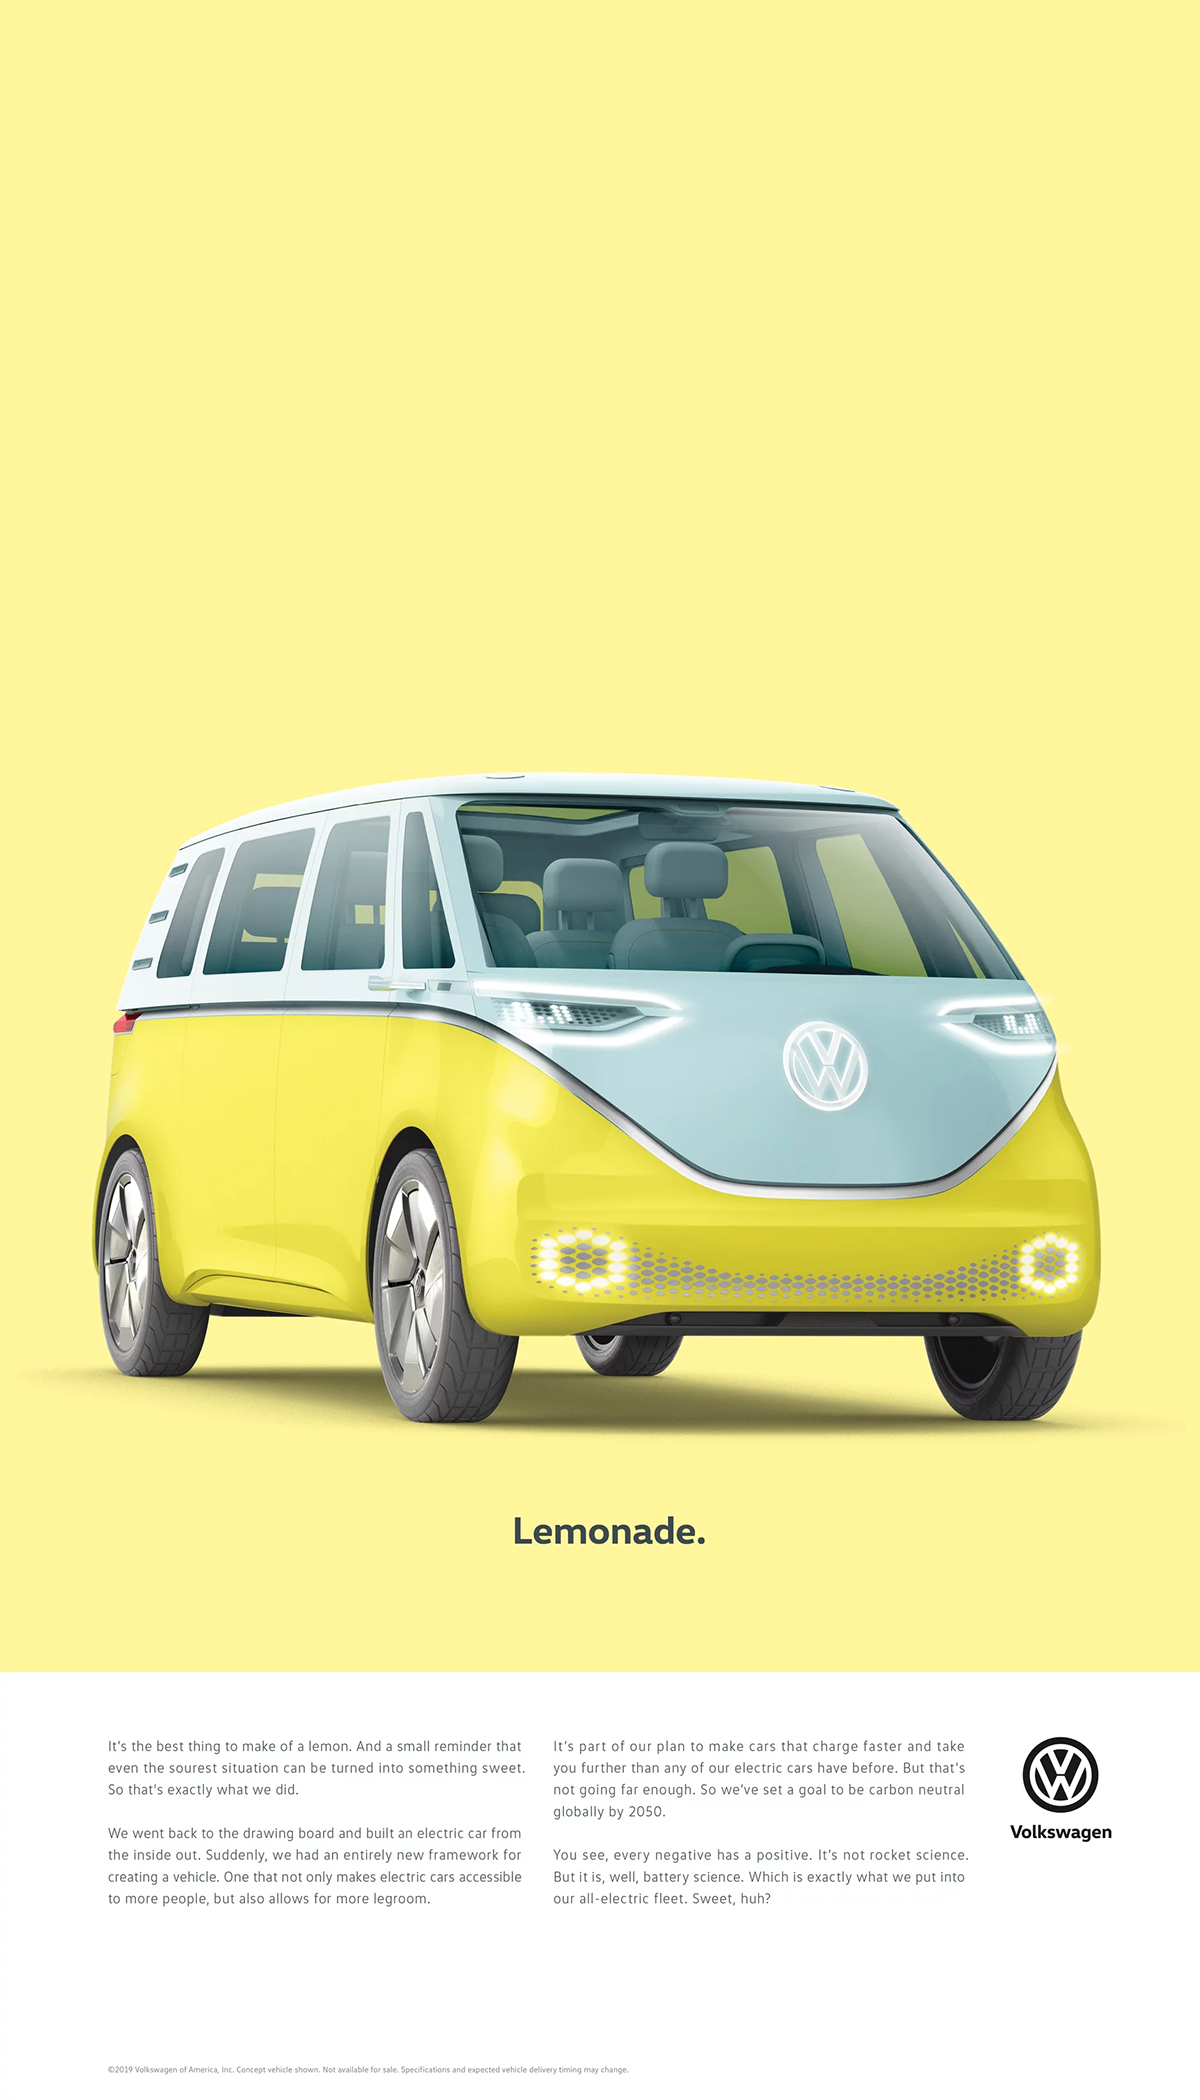 VW-Lemonade.png